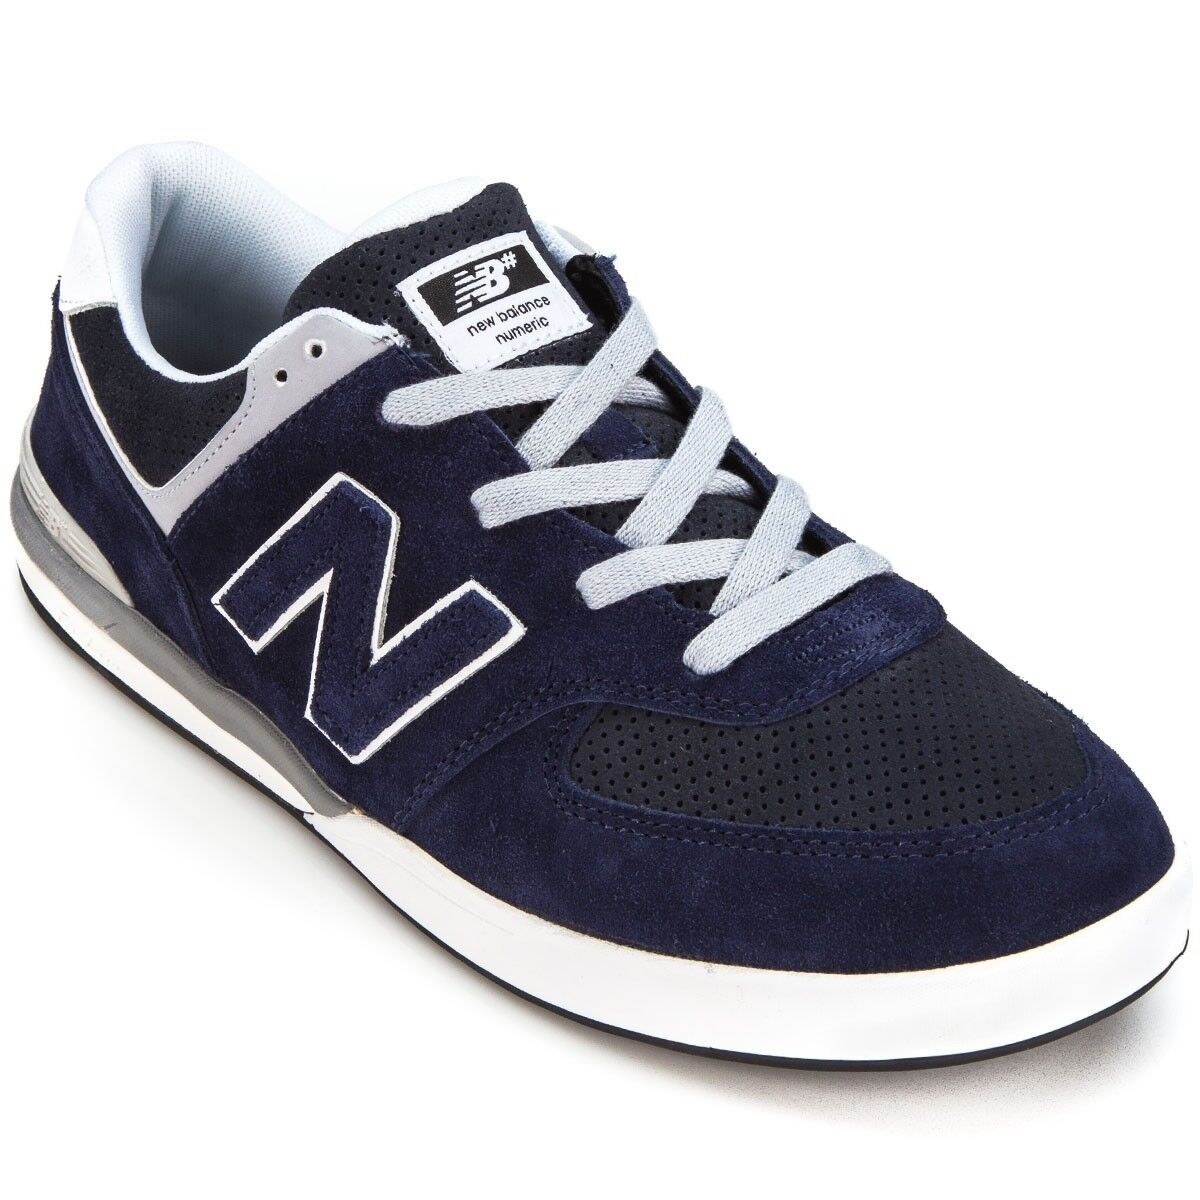 New Balance  Logan Suede  navy grey shoes